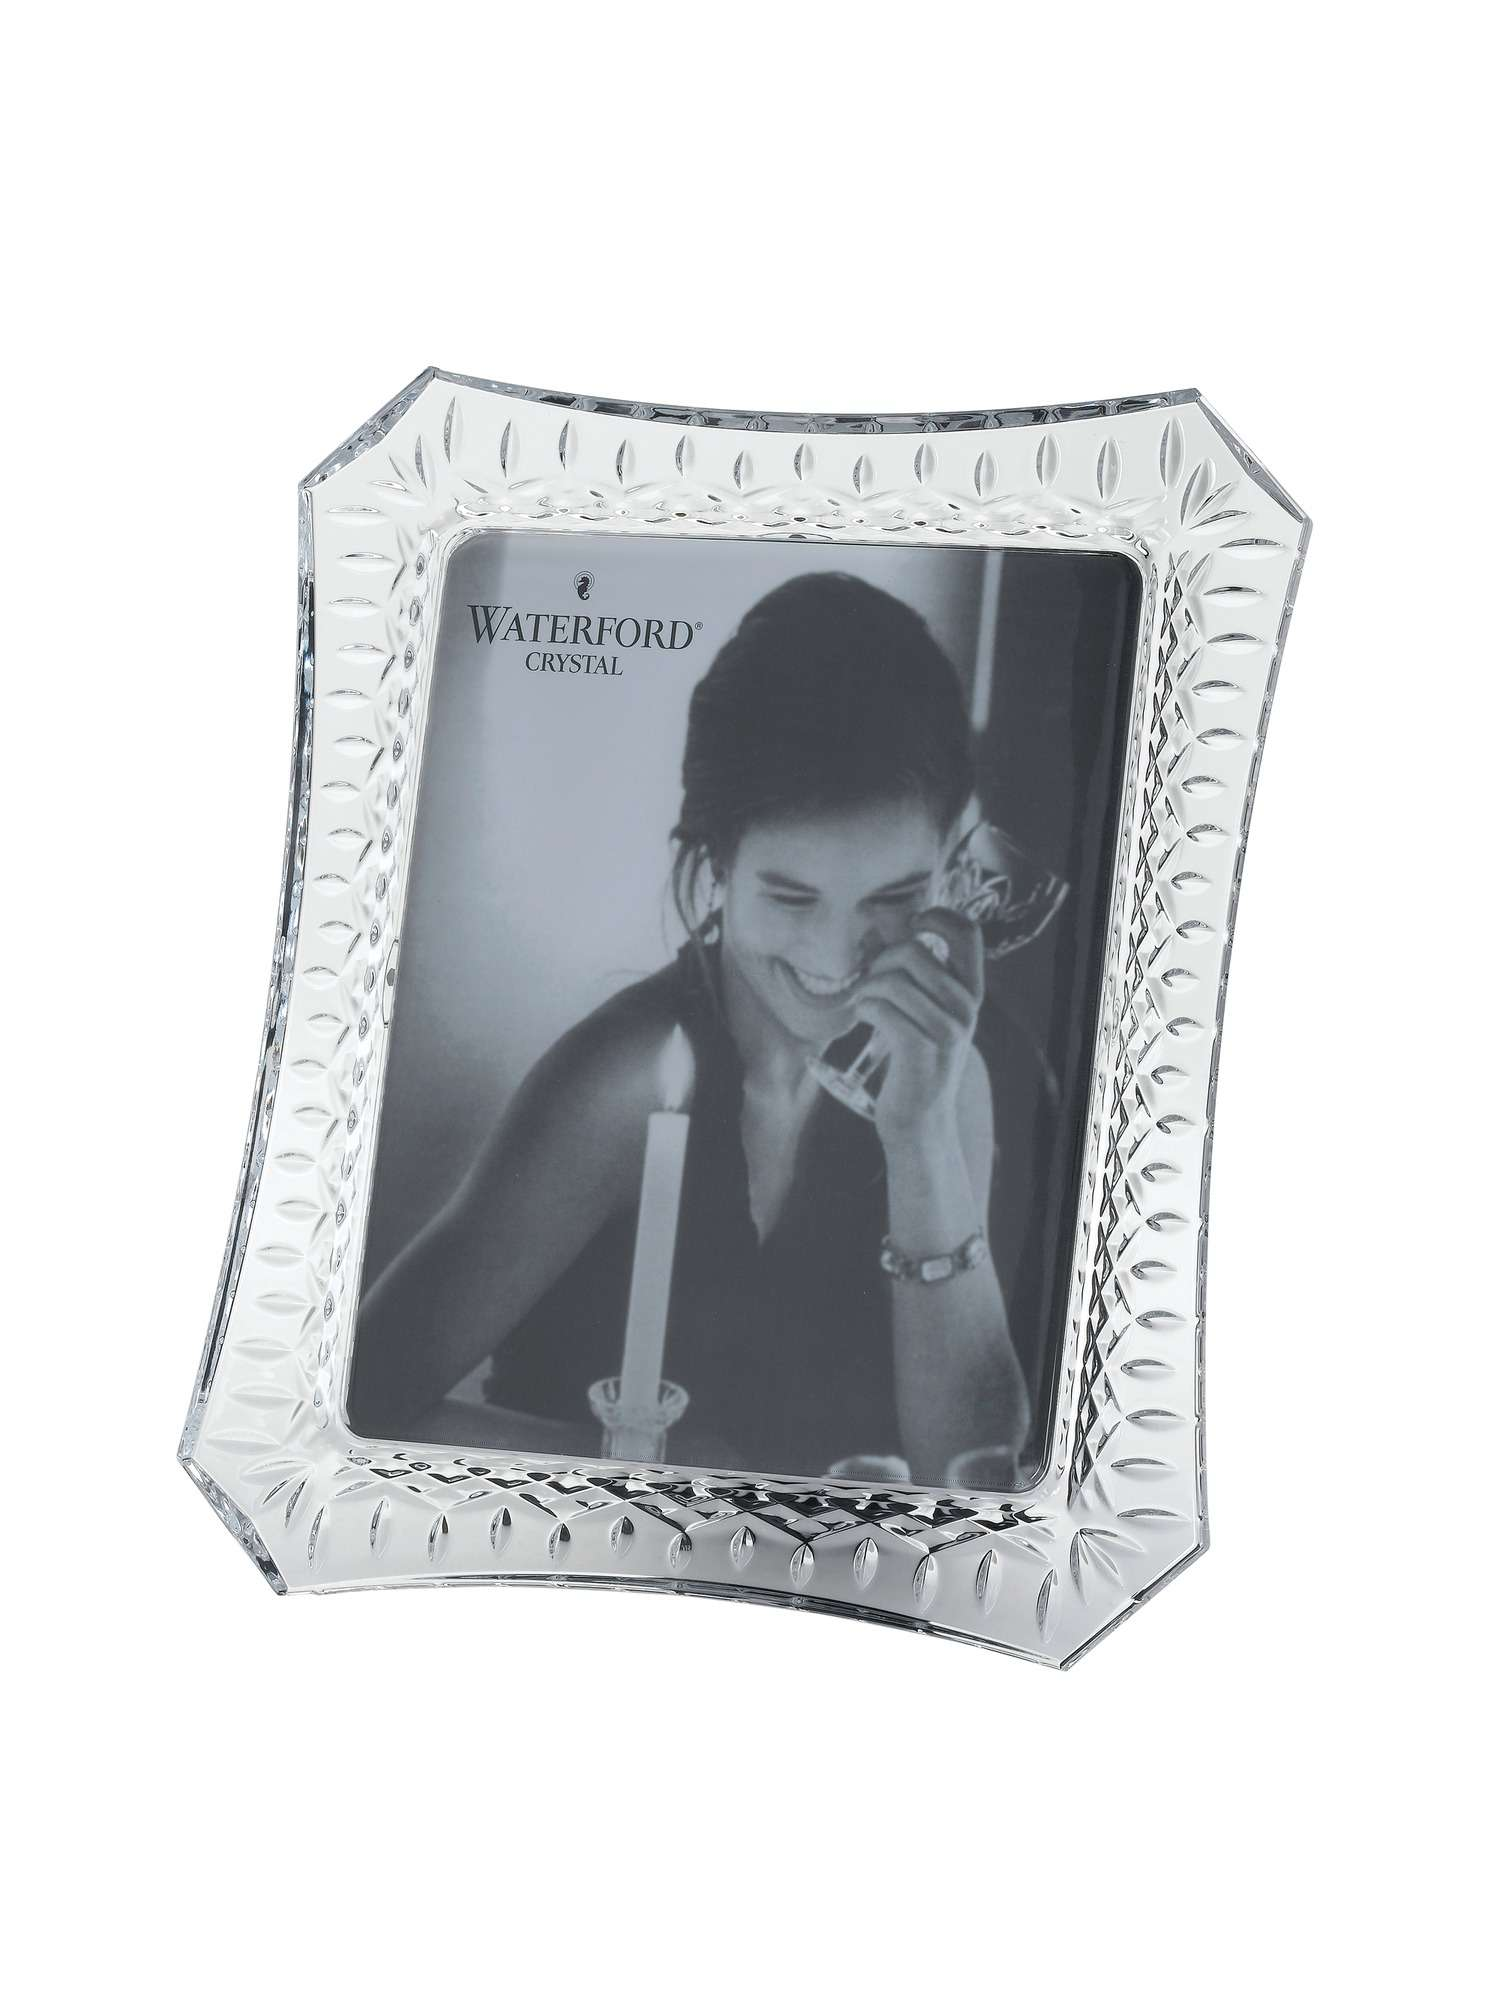 Waterford Crystal Photo Frame House Of Fraser